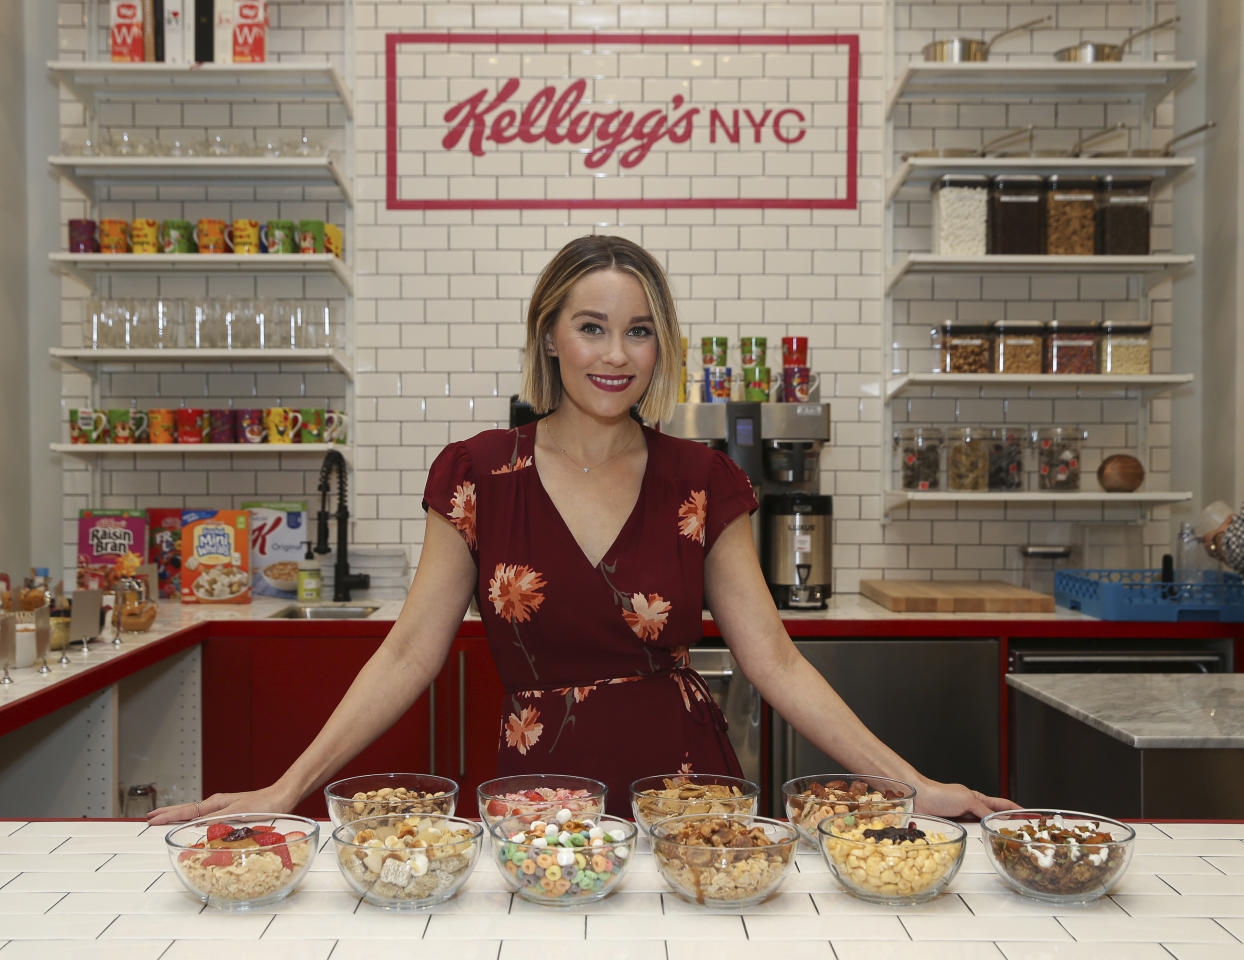 IMAGE DISTRIBUTED FOR KELLOGG'S - Designer, foodie and lifestyle expert Lauren Conrad designed several cereal creations for the new Union Square Kellogg's® NYC Café on Tuesday, Dec. 12, 2017, in New York. (Mark Von Holden/AP Images for Kellogg's)